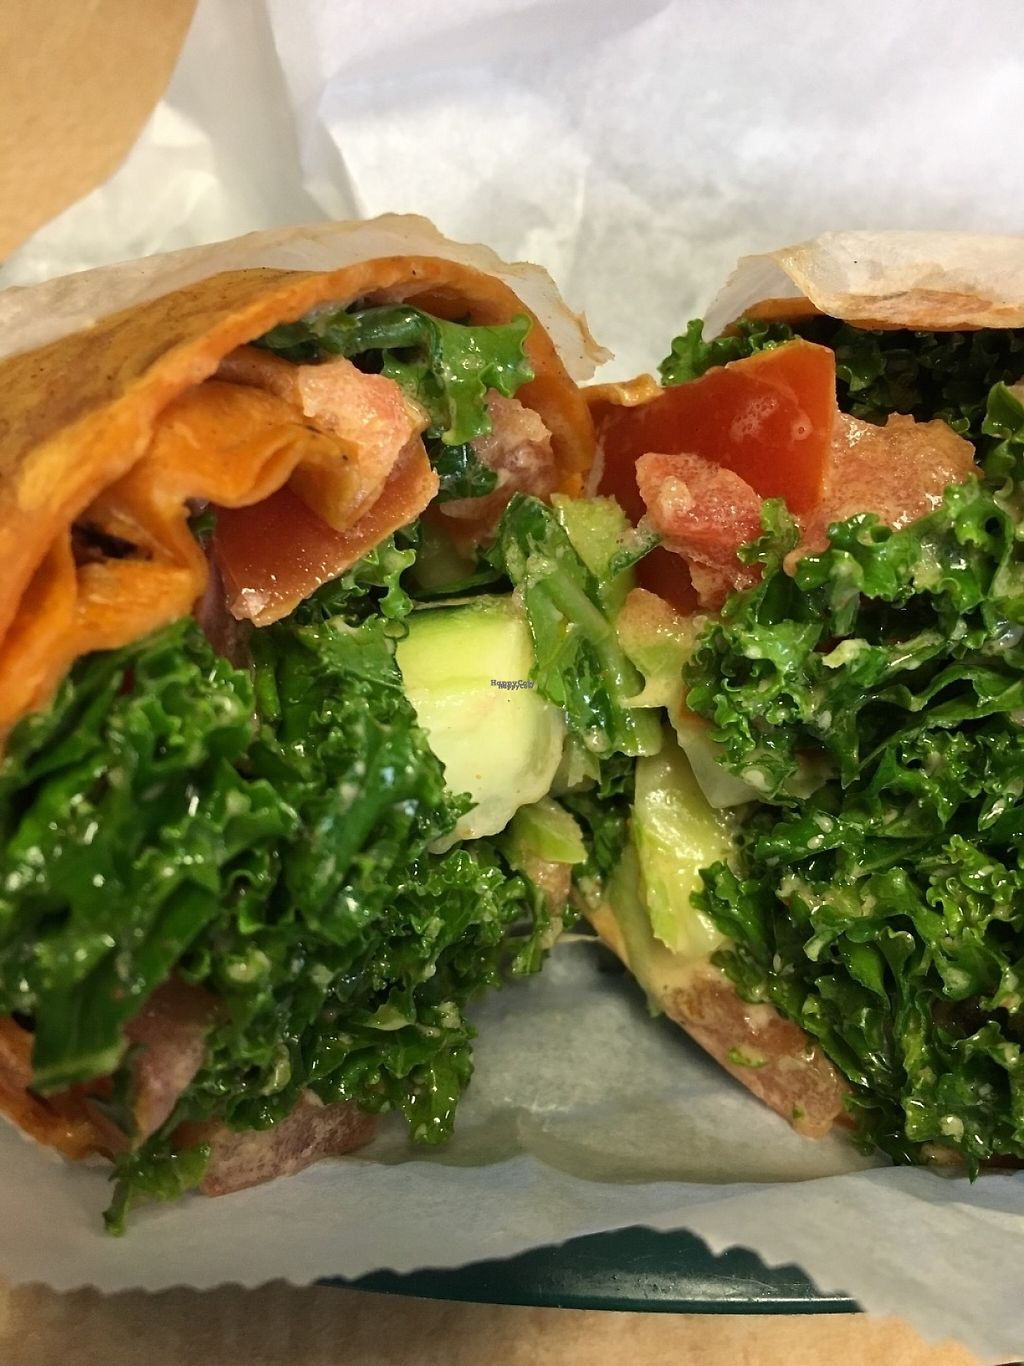 """Photo of Viva La Vegan  by <a href=""""/members/profile/cookiem"""">cookiem</a> <br/>Big kale wrap <br/> February 21, 2017  - <a href='/contact/abuse/image/61498/228943'>Report</a>"""